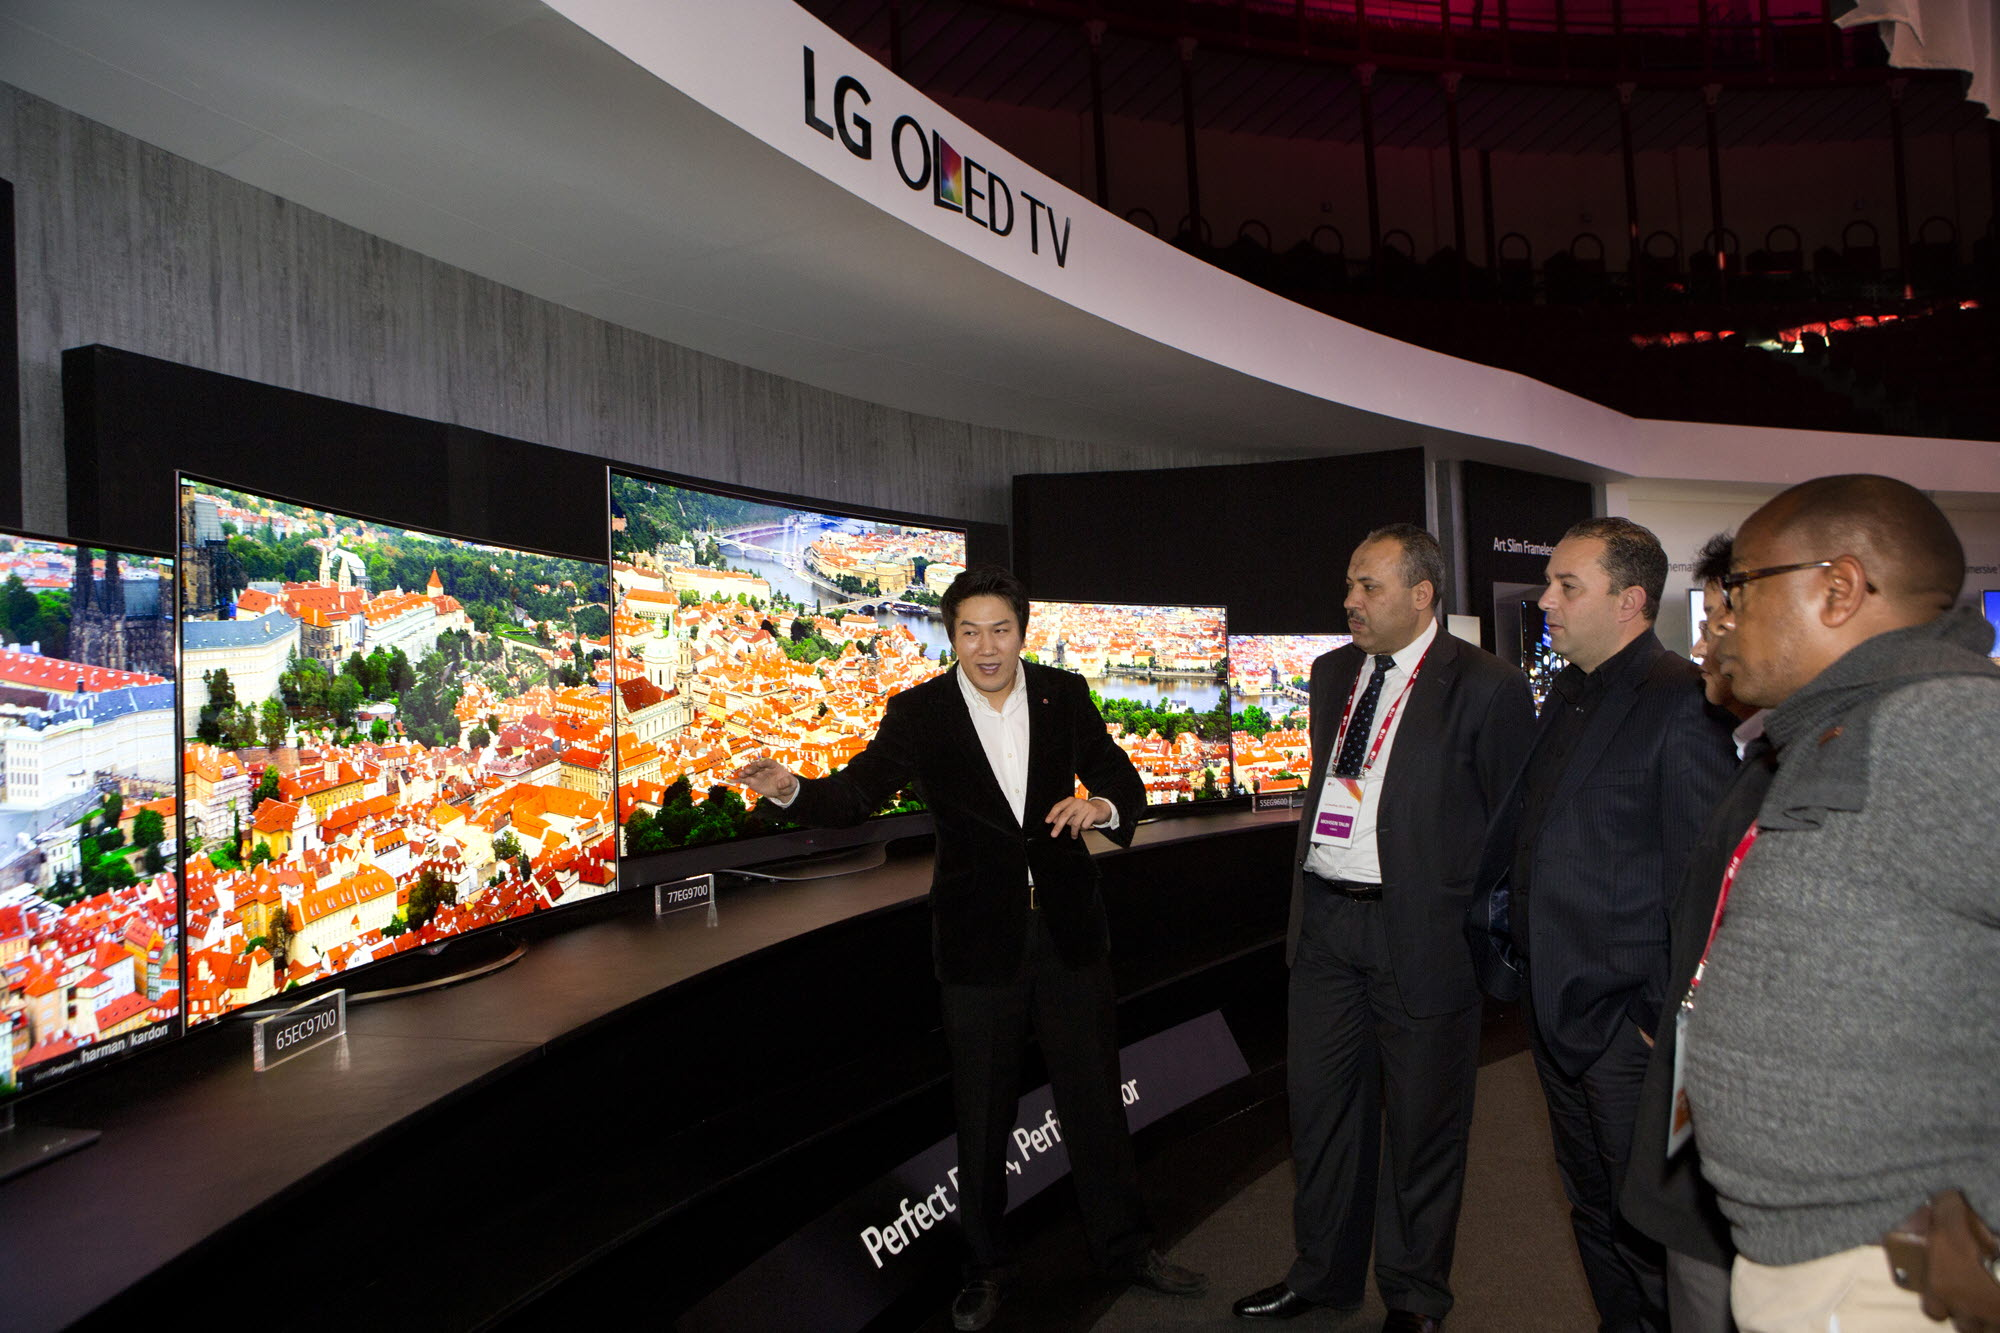 A guide explains the LG's flashship 4K OLED TV lineup to visitors.